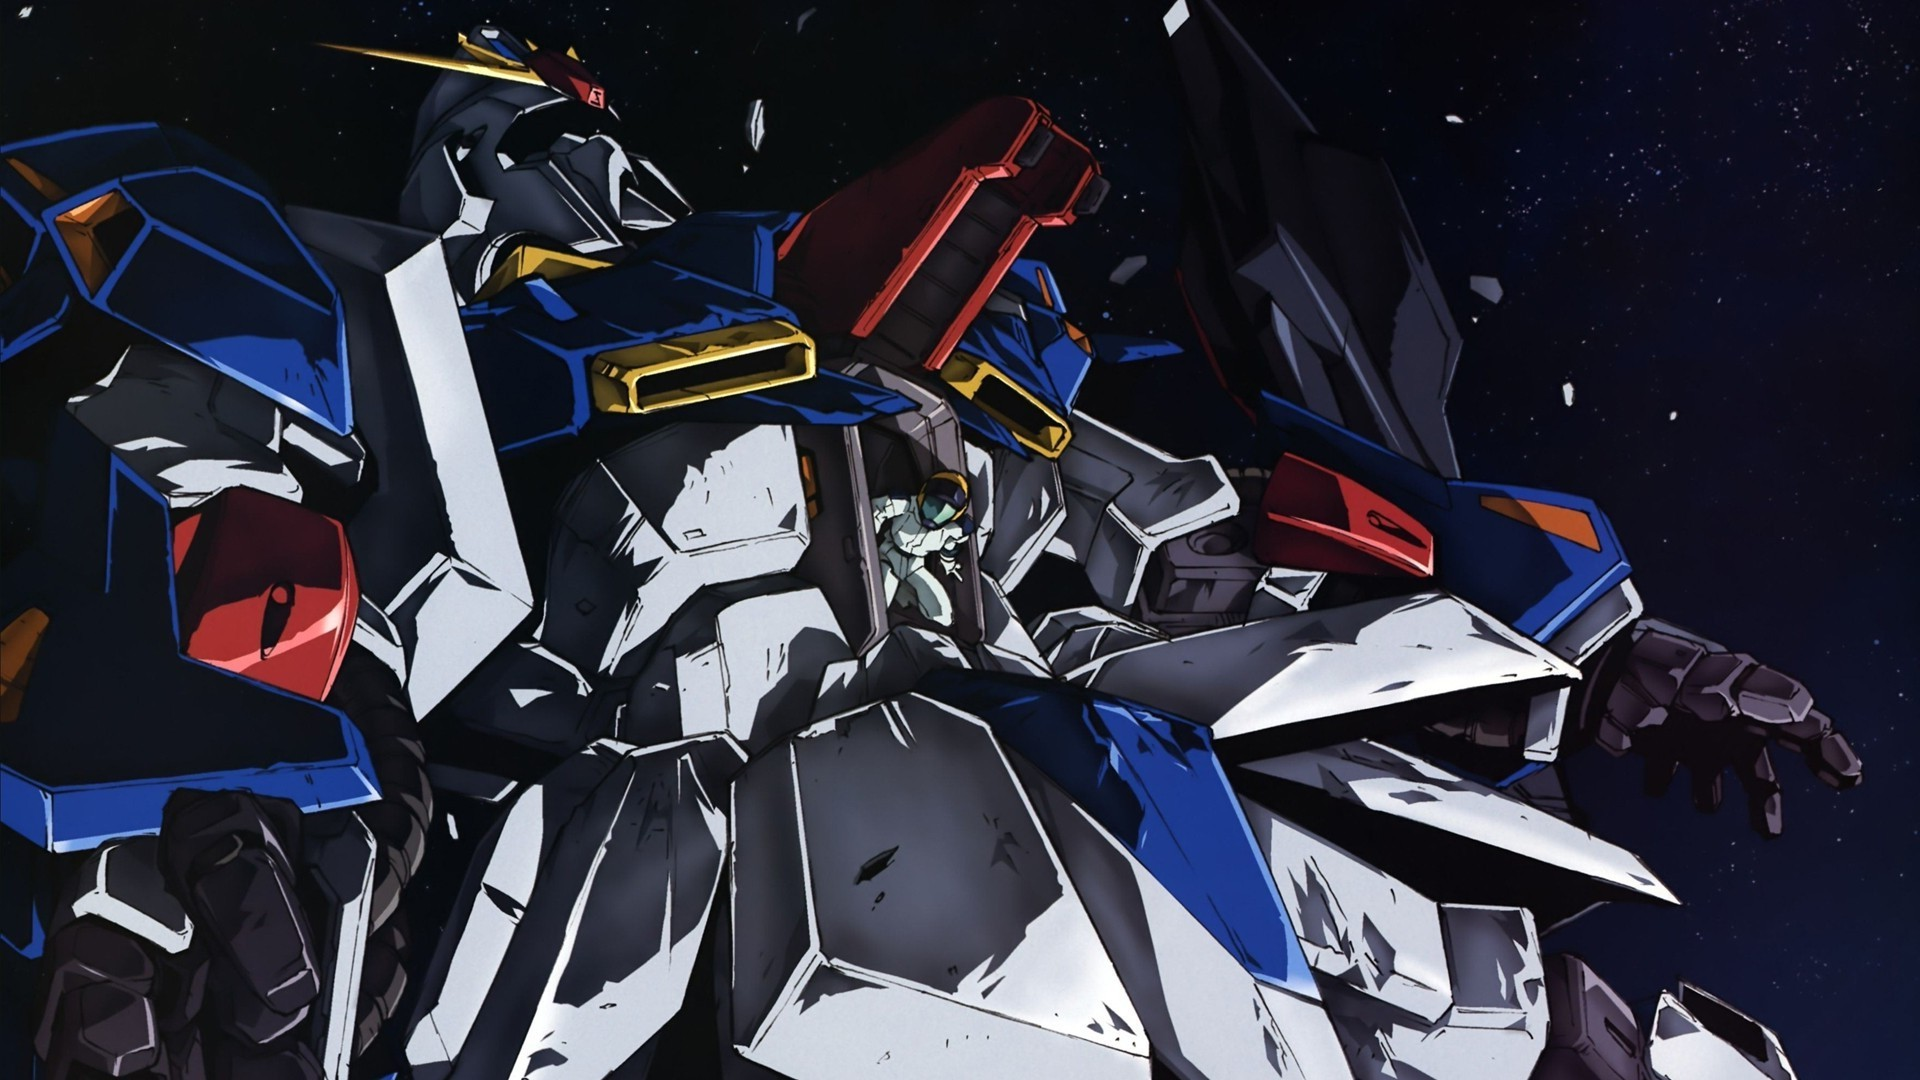 Gundam Unicorn Wallpaper HD (66+ images)